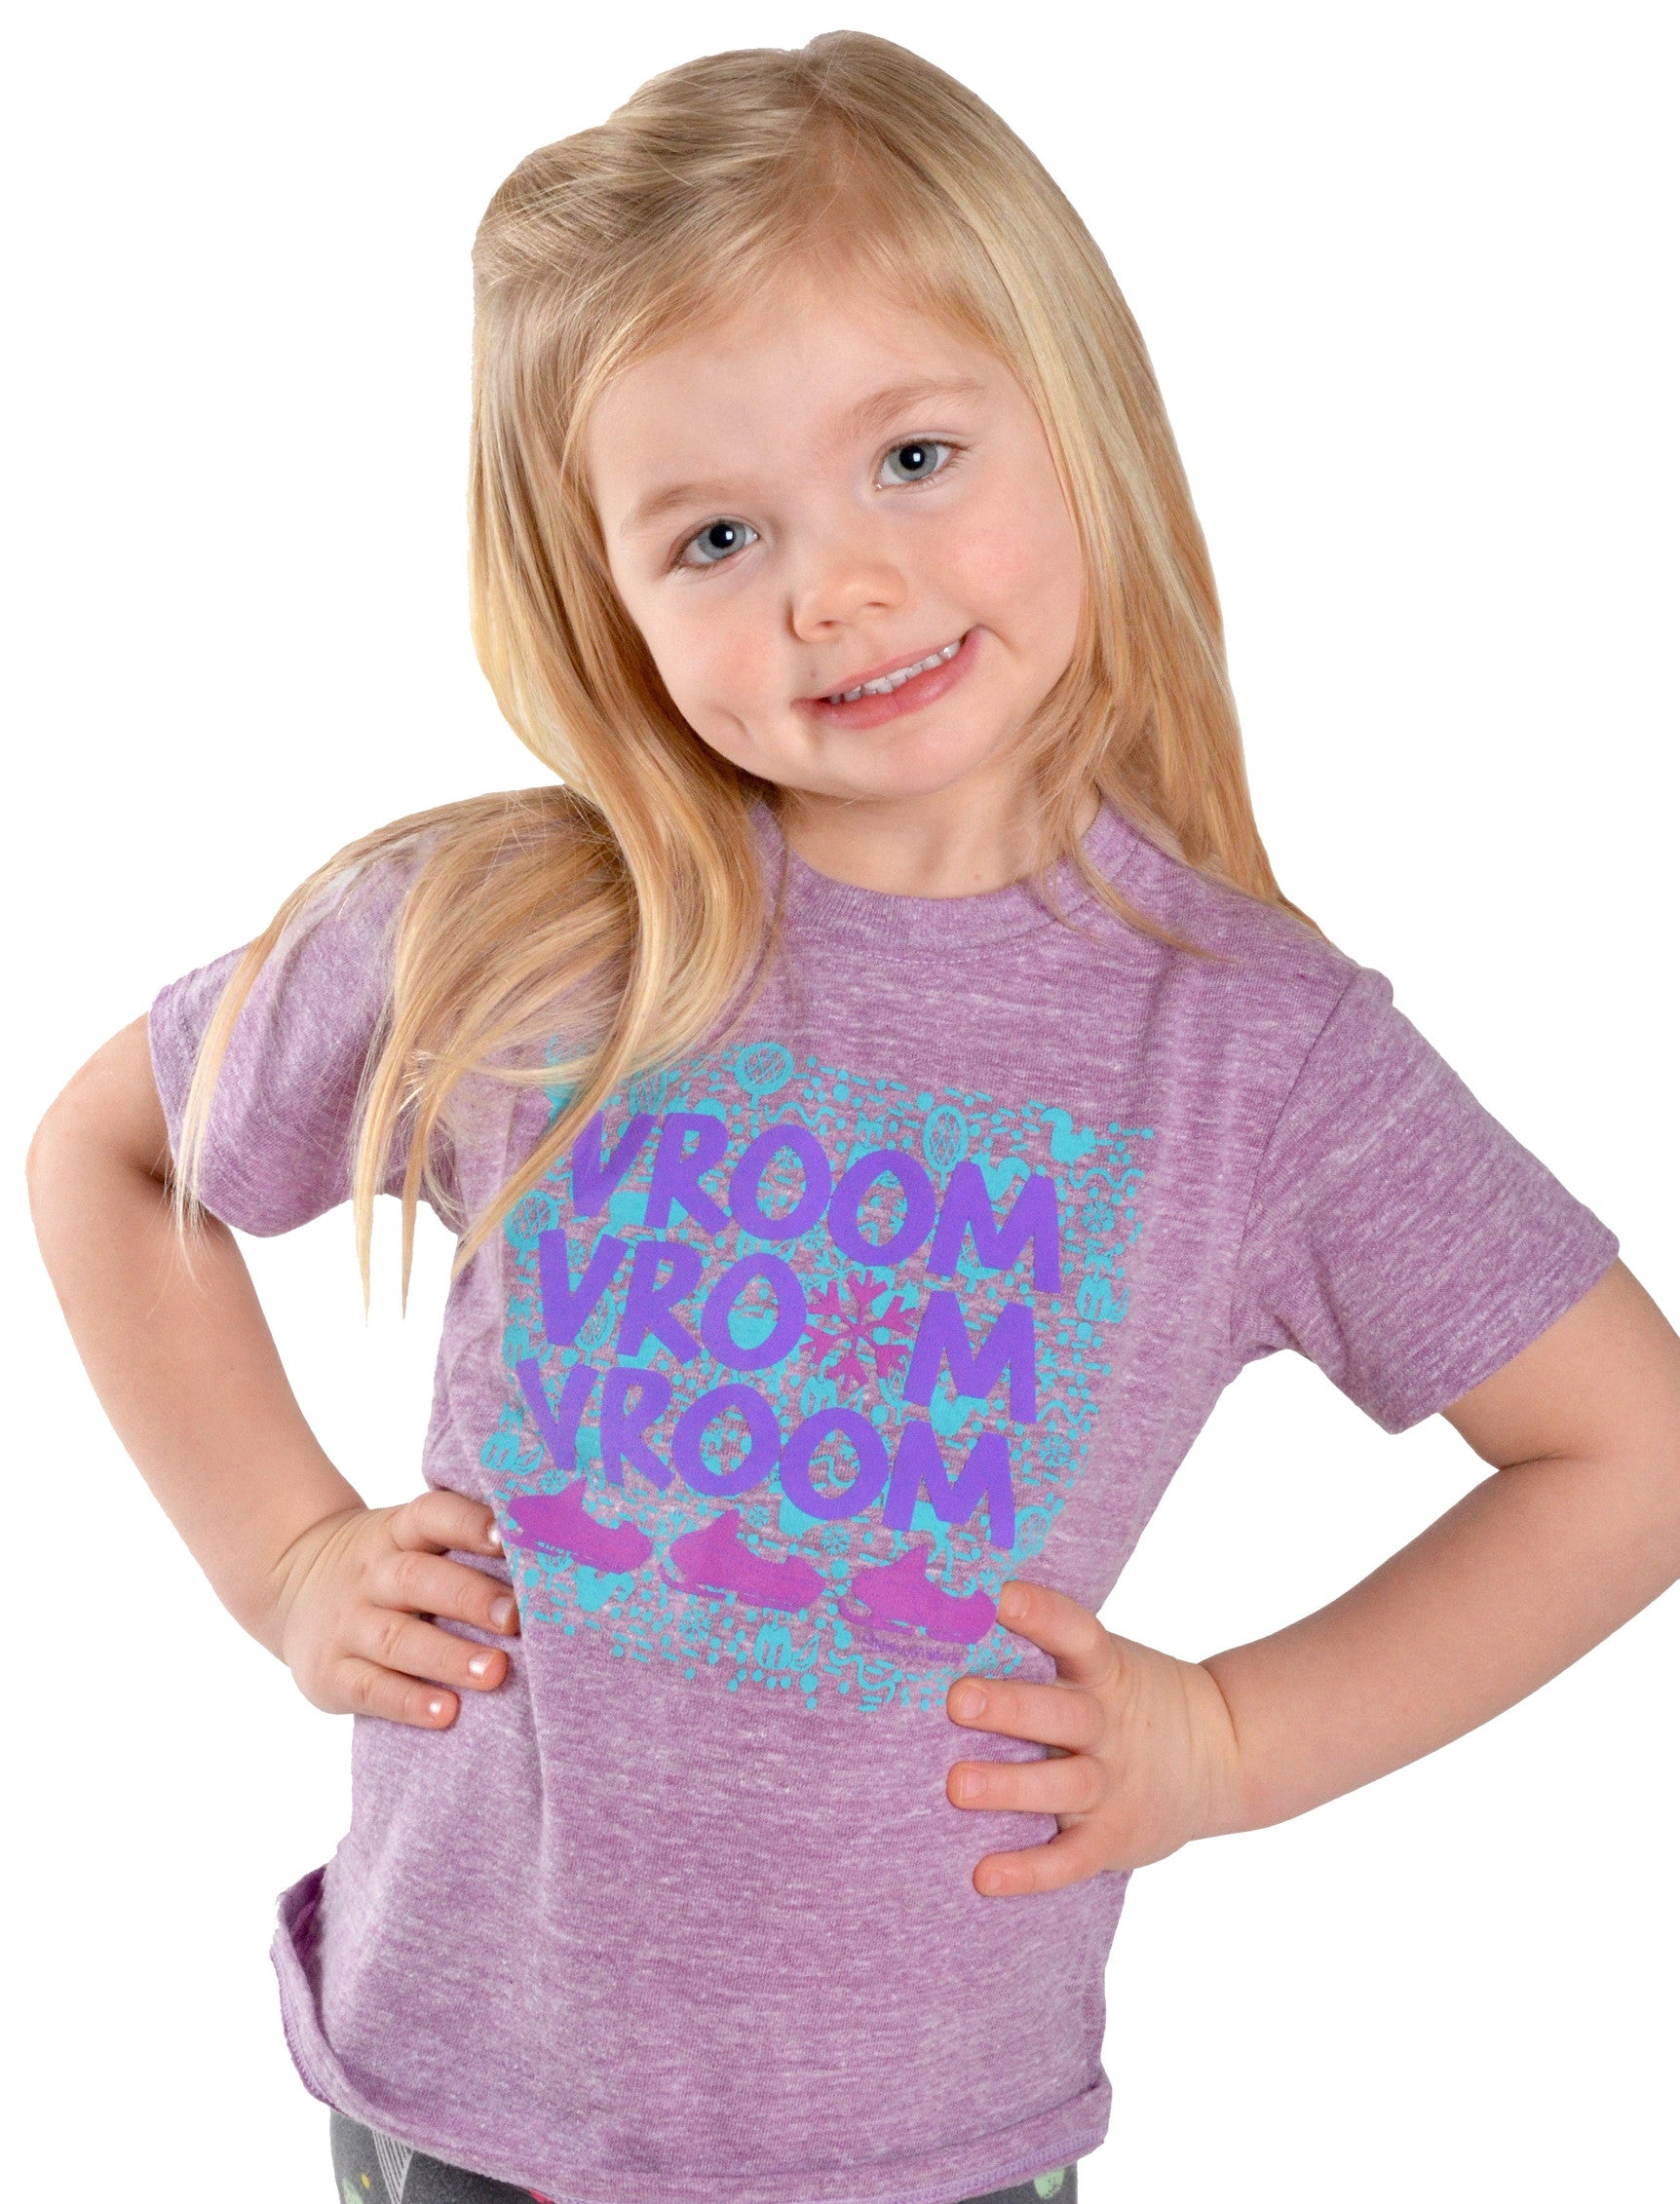 Snowmobaby, raising riders, made in USA, USA made, Unisex, boys, girls, baby boy, baby girl, snowmobile t-shirt, snowmobile tee, snowmobile apparel, kids snowmobile casual wear, kids snowmobile clothes, children's snowmobile clothes, children's snowmobile t-shirt, snowmobile presents parents, snowmobile gifts, kids snowmobile gifts, great ideas for snowmobile kids, gift ideas for snowmobilers, gift ideas for sledders, gifts for motorheads, toddler snowmobile clothes, toddler snowmobile apparel, toddler sled gear, snowmobile toddler gift ideas